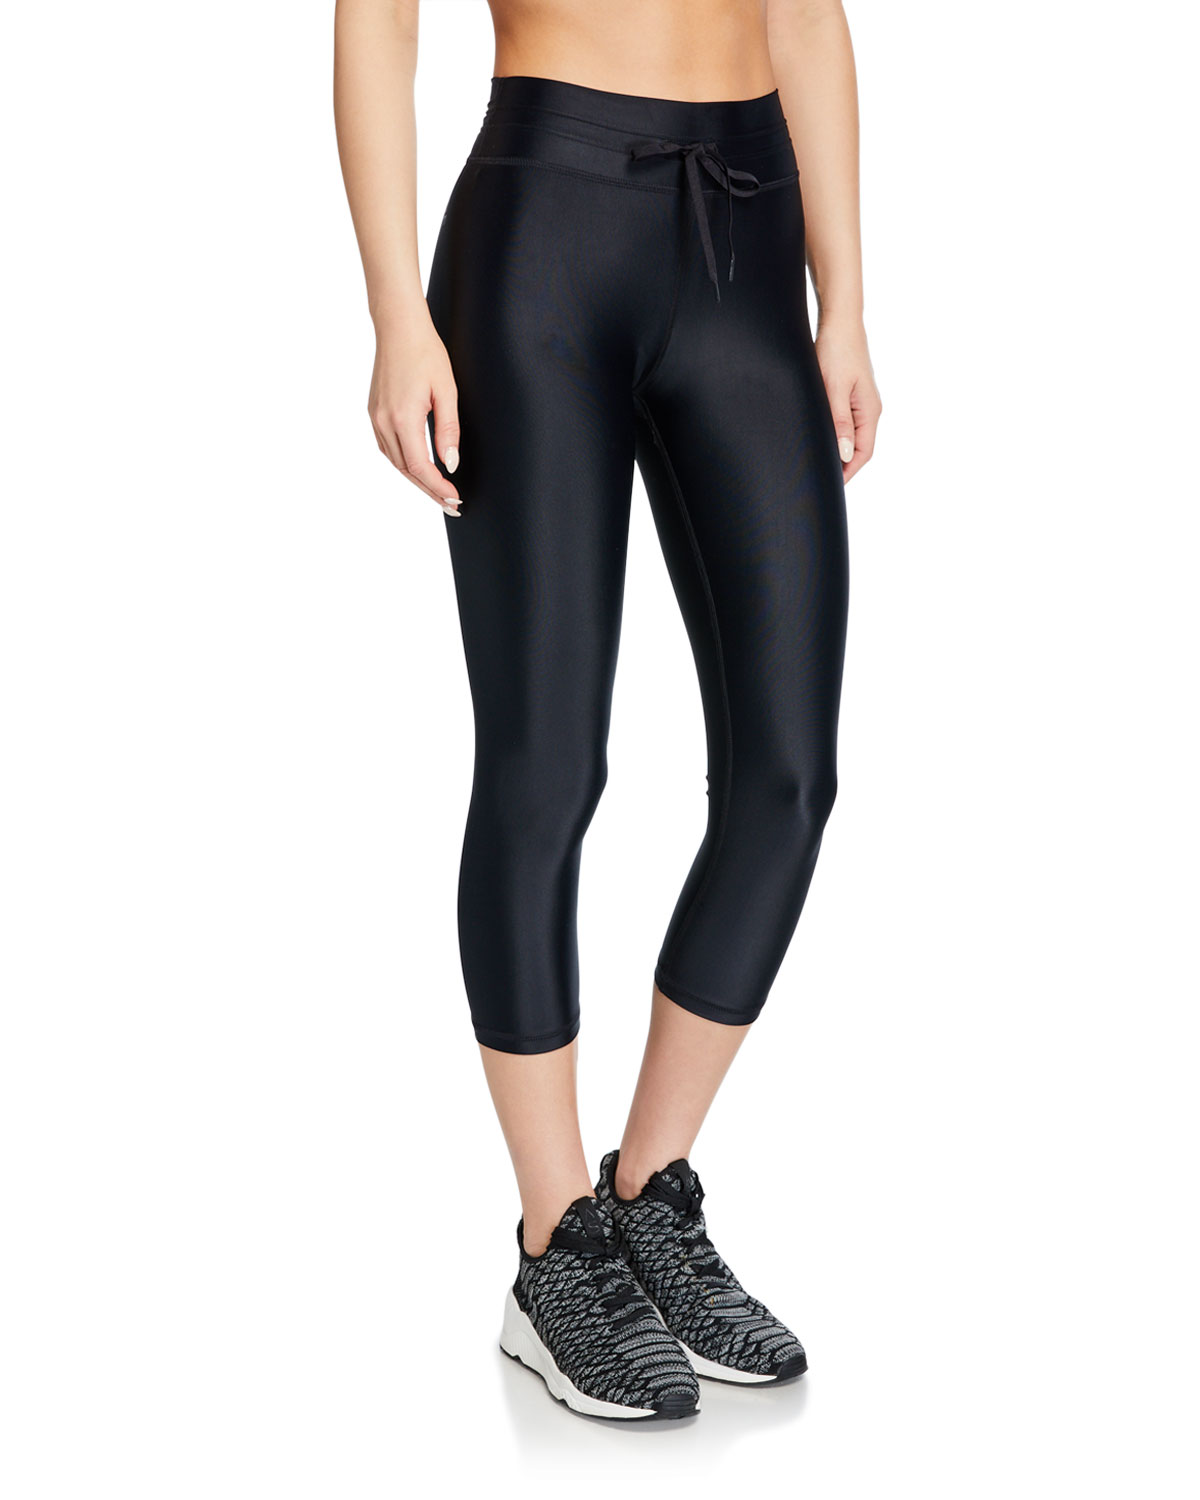 The Upside NYC Cropped Yoga Leggings